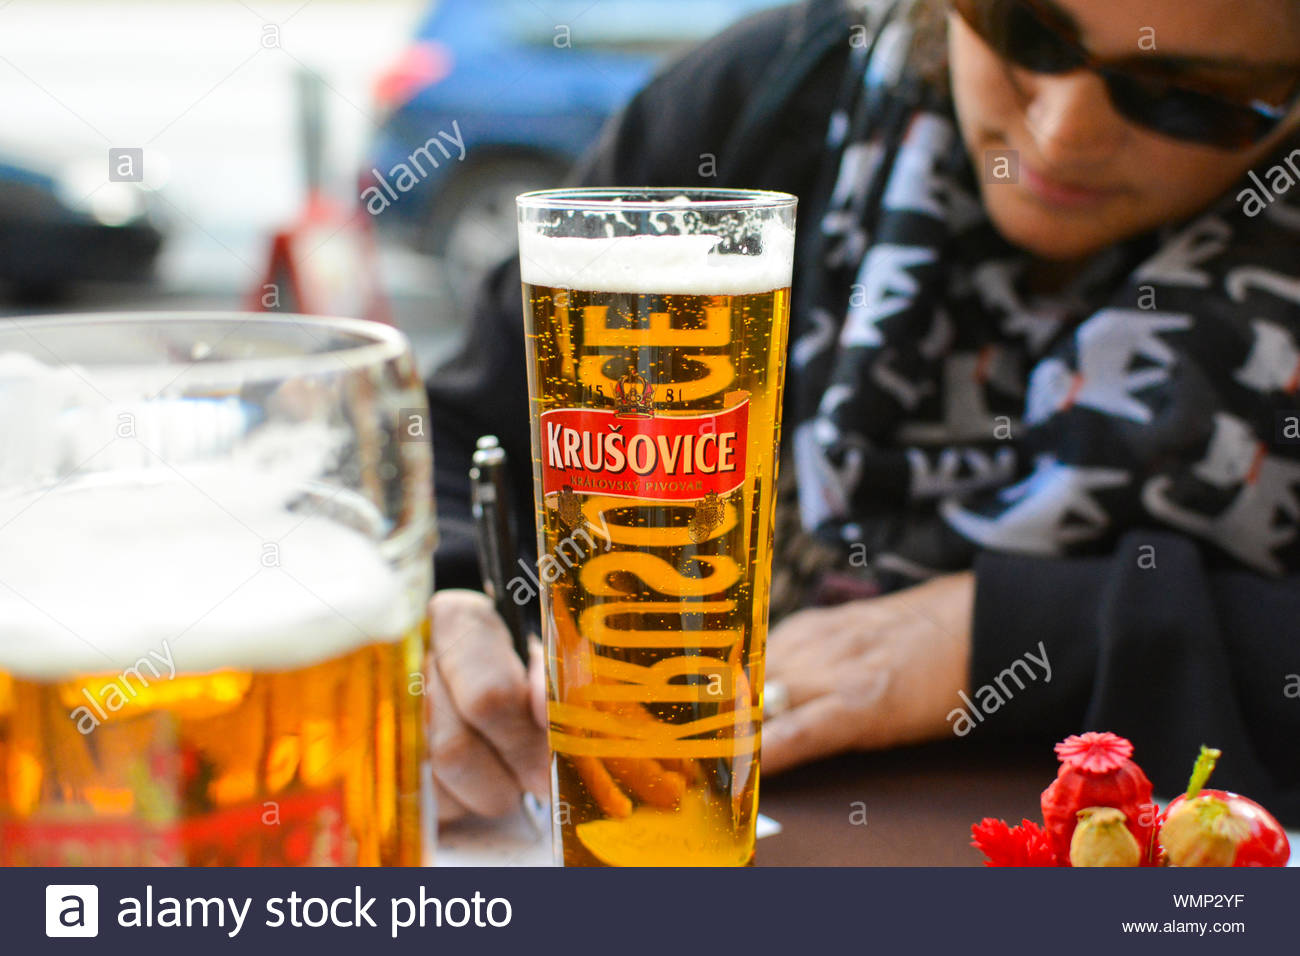 A woman wearing dark glasses and drinking a beer fills out postcards at a sidewalk cafe Stock Photo